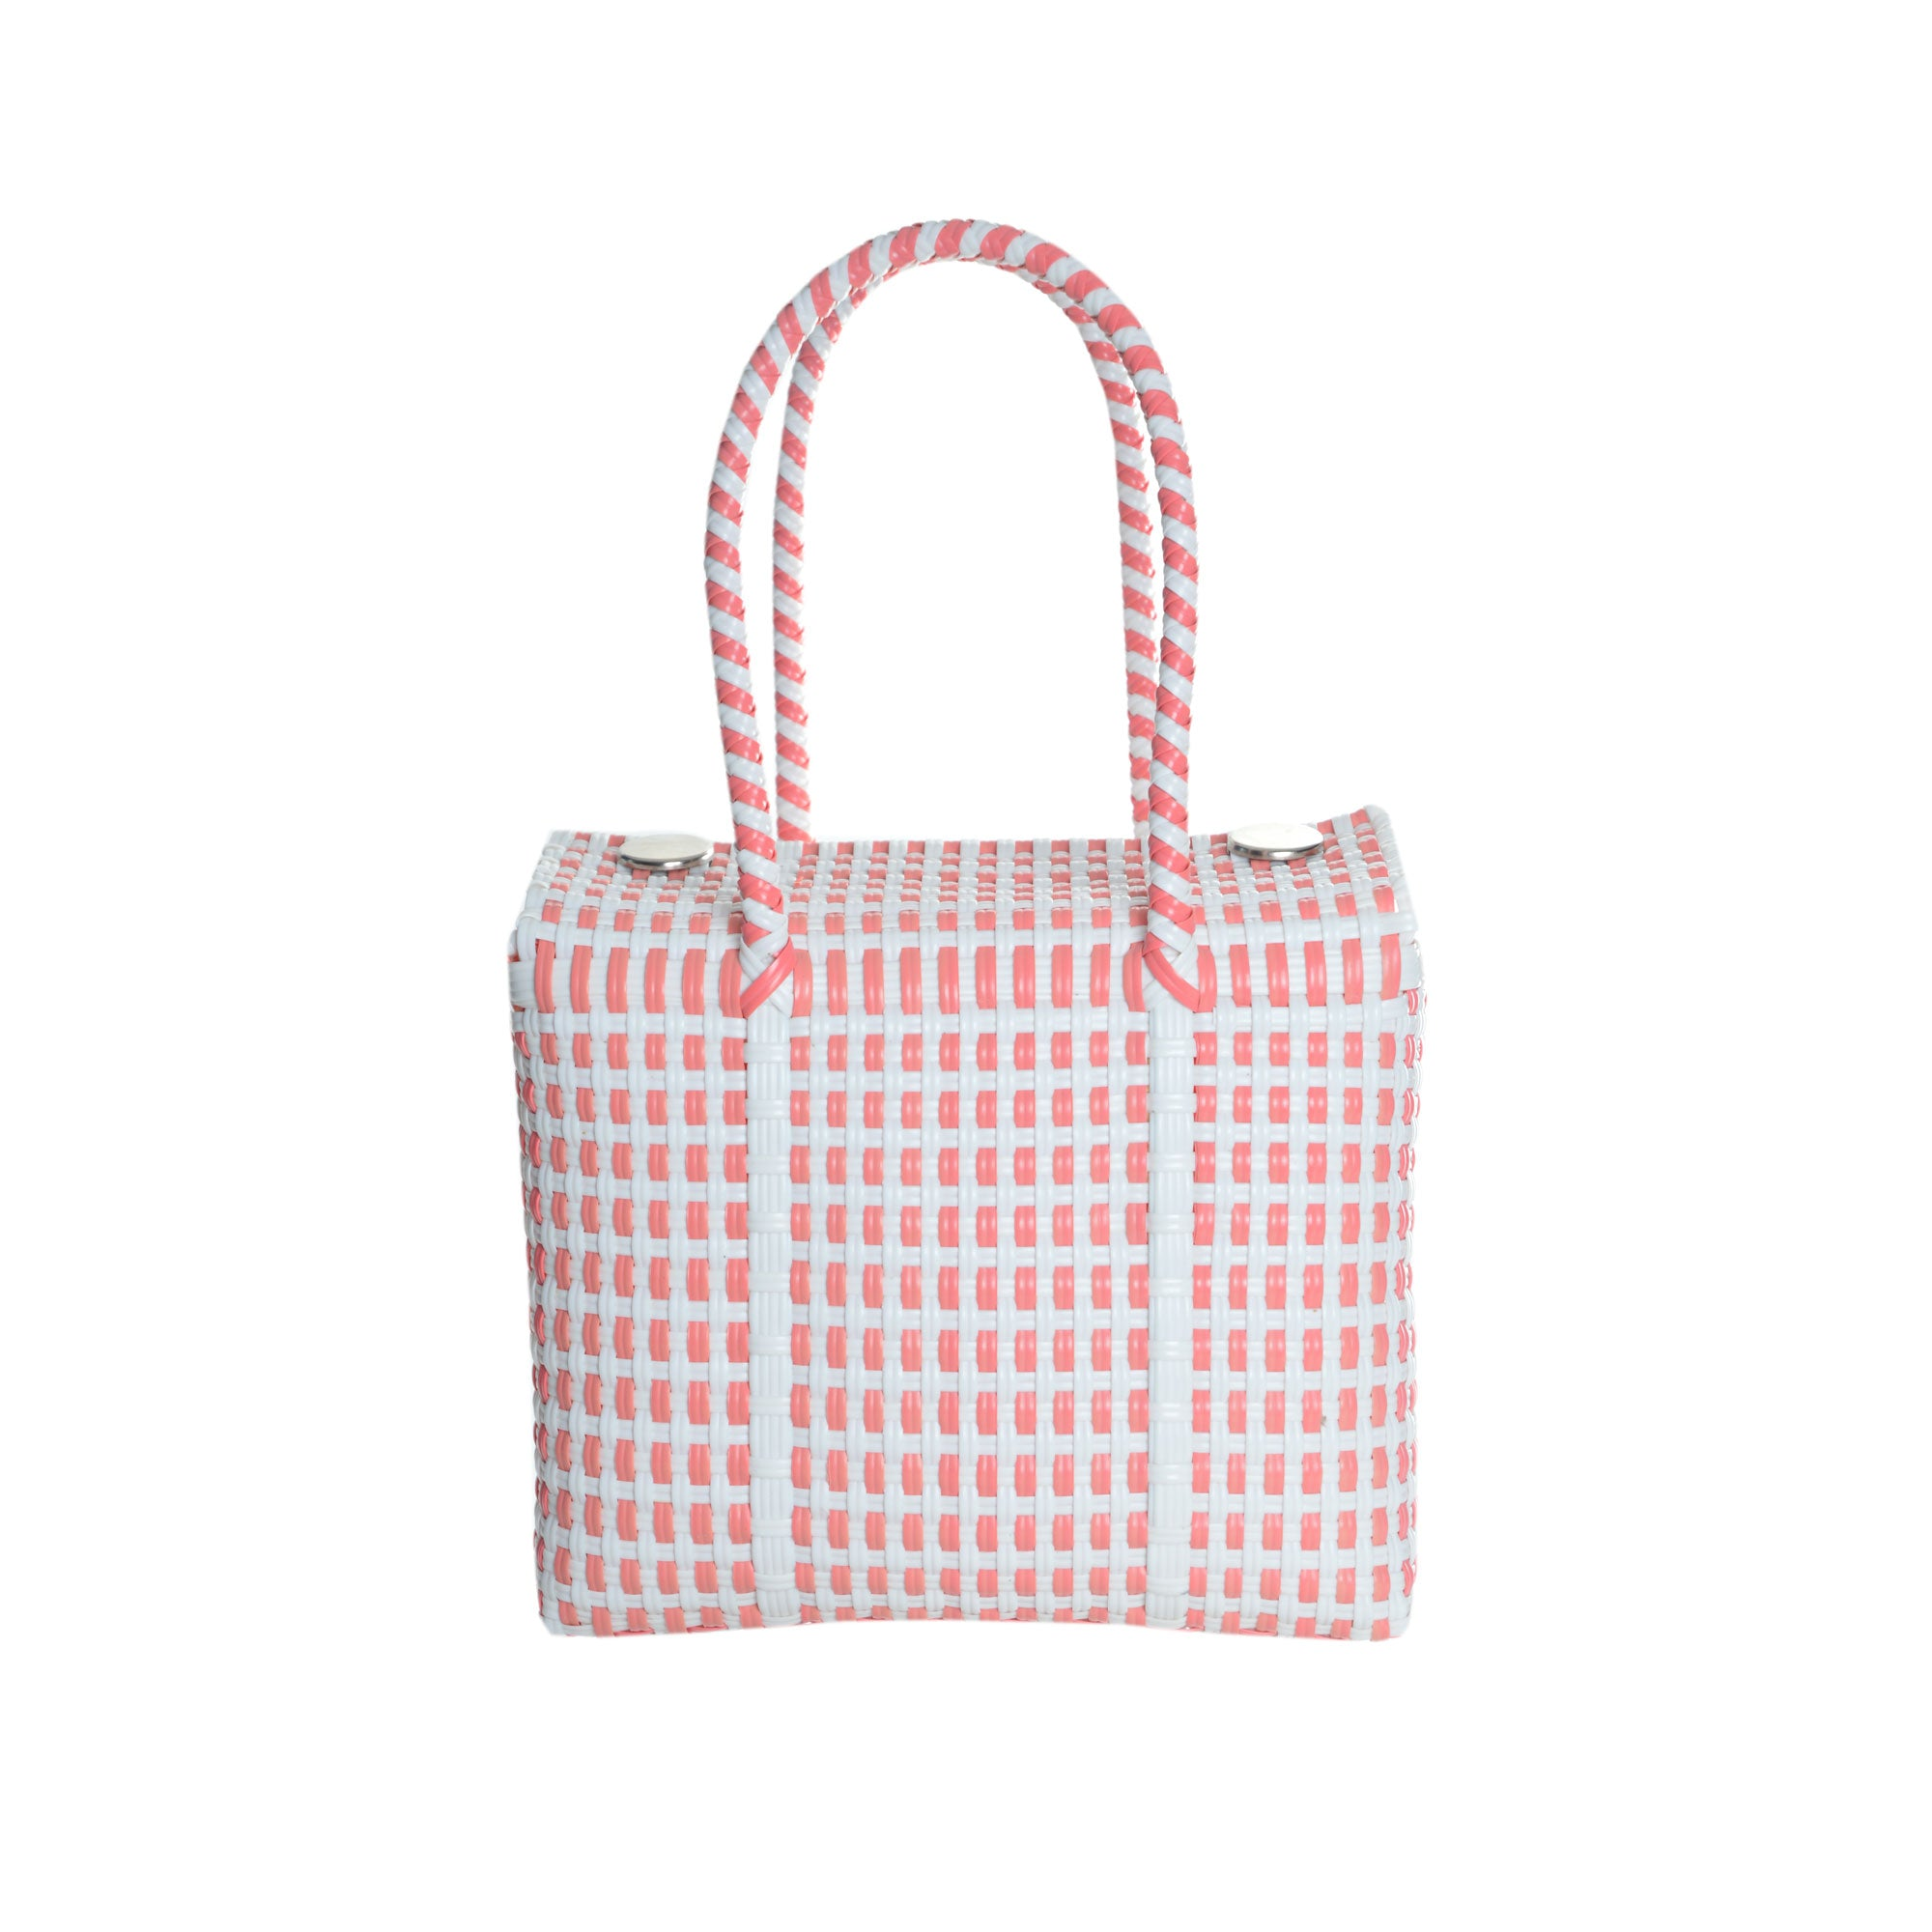 Woven Oaxaca Tote - Coral Pink